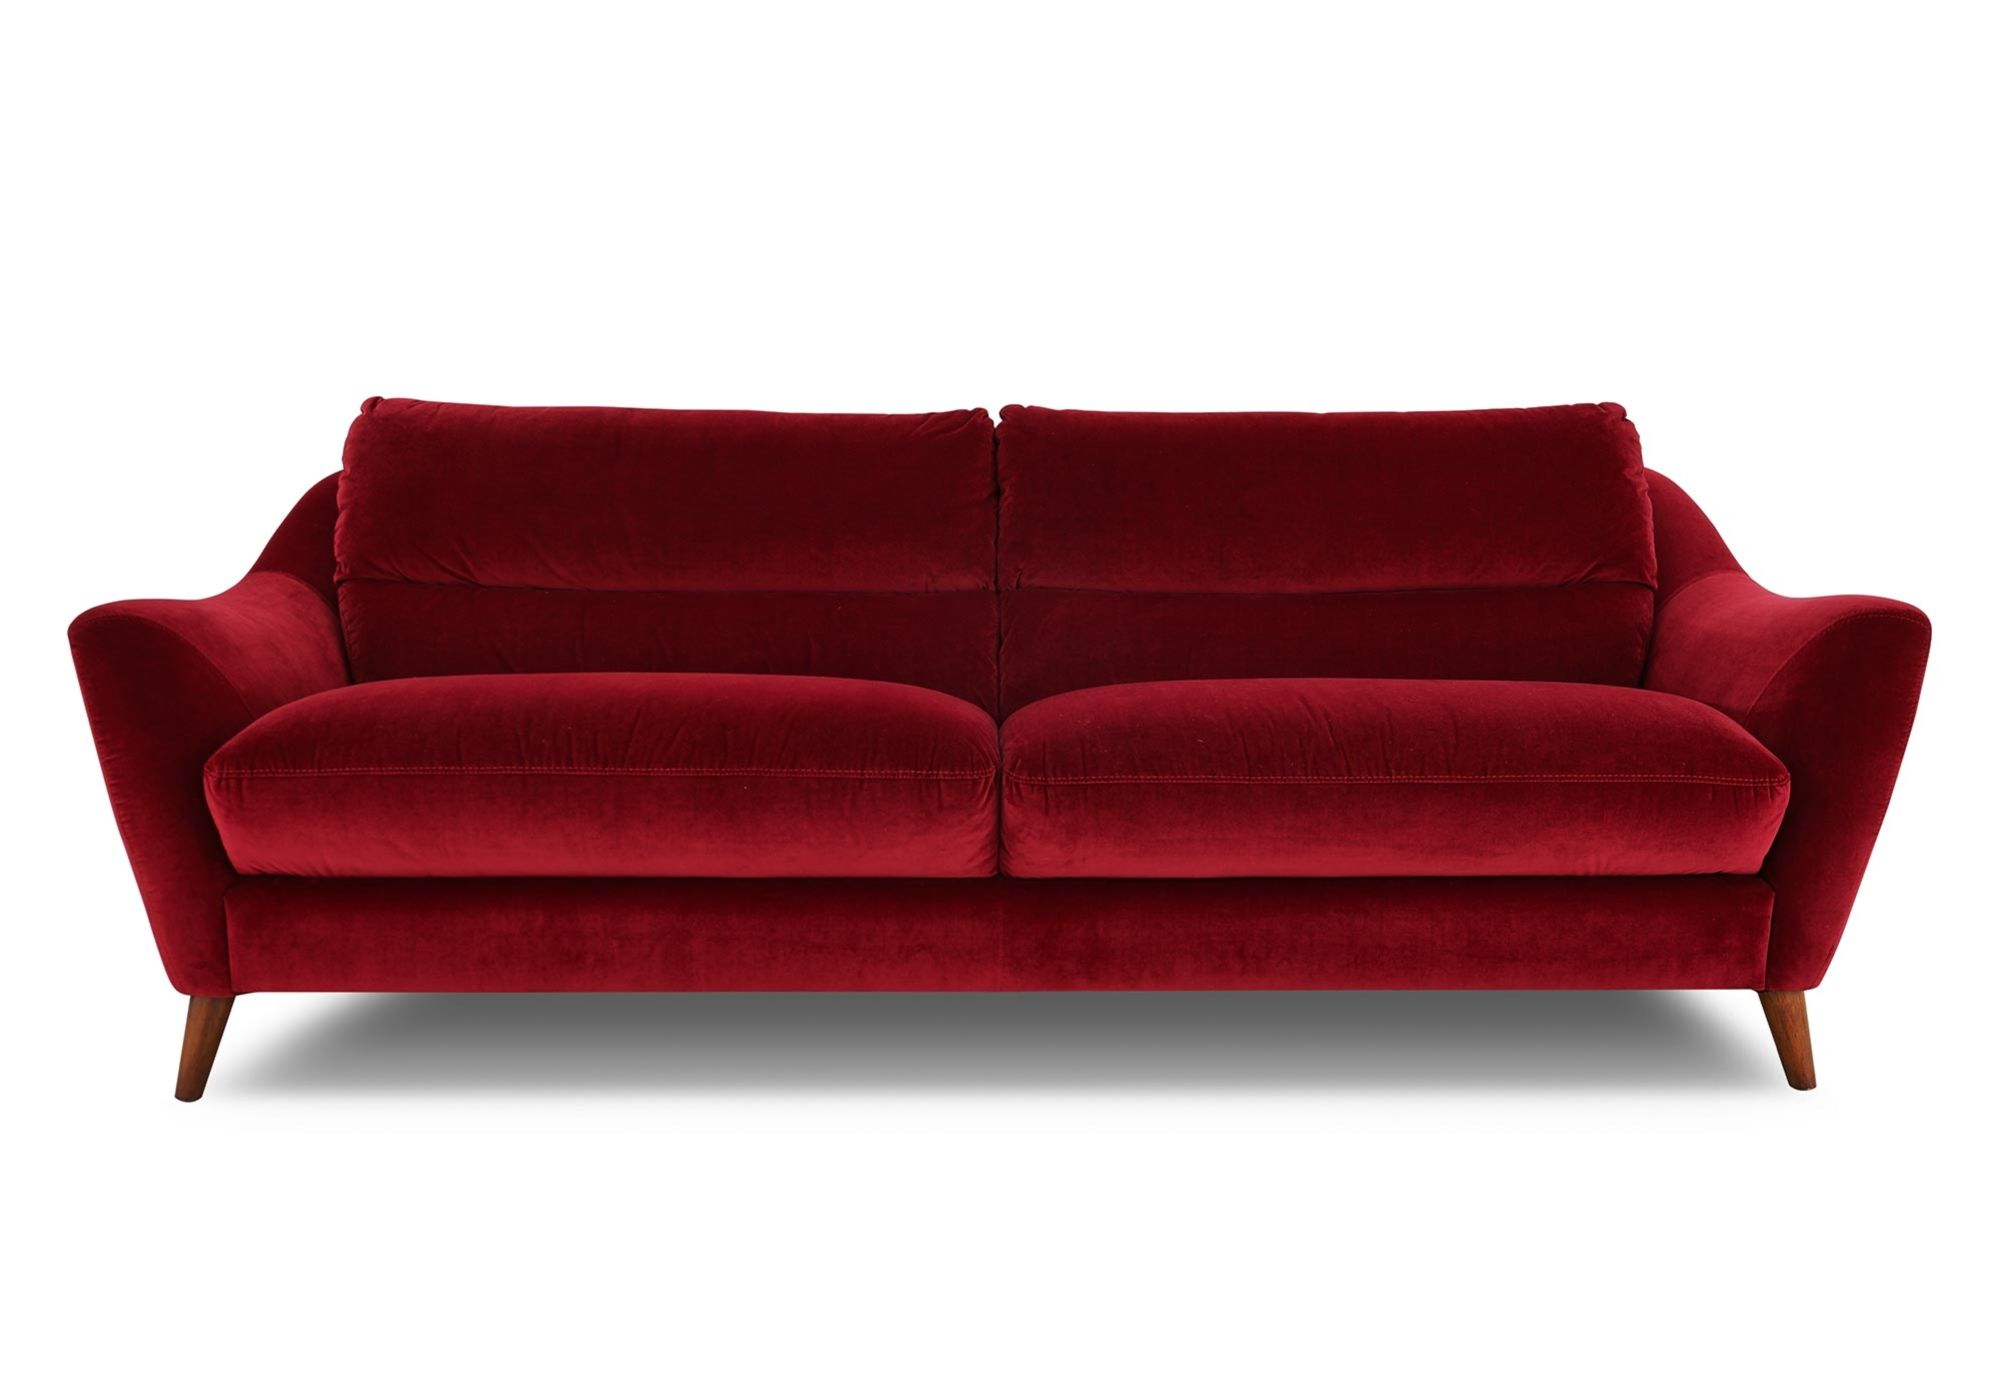 furniture village sofa bed dante fl sofas fabric chesterfield chairs